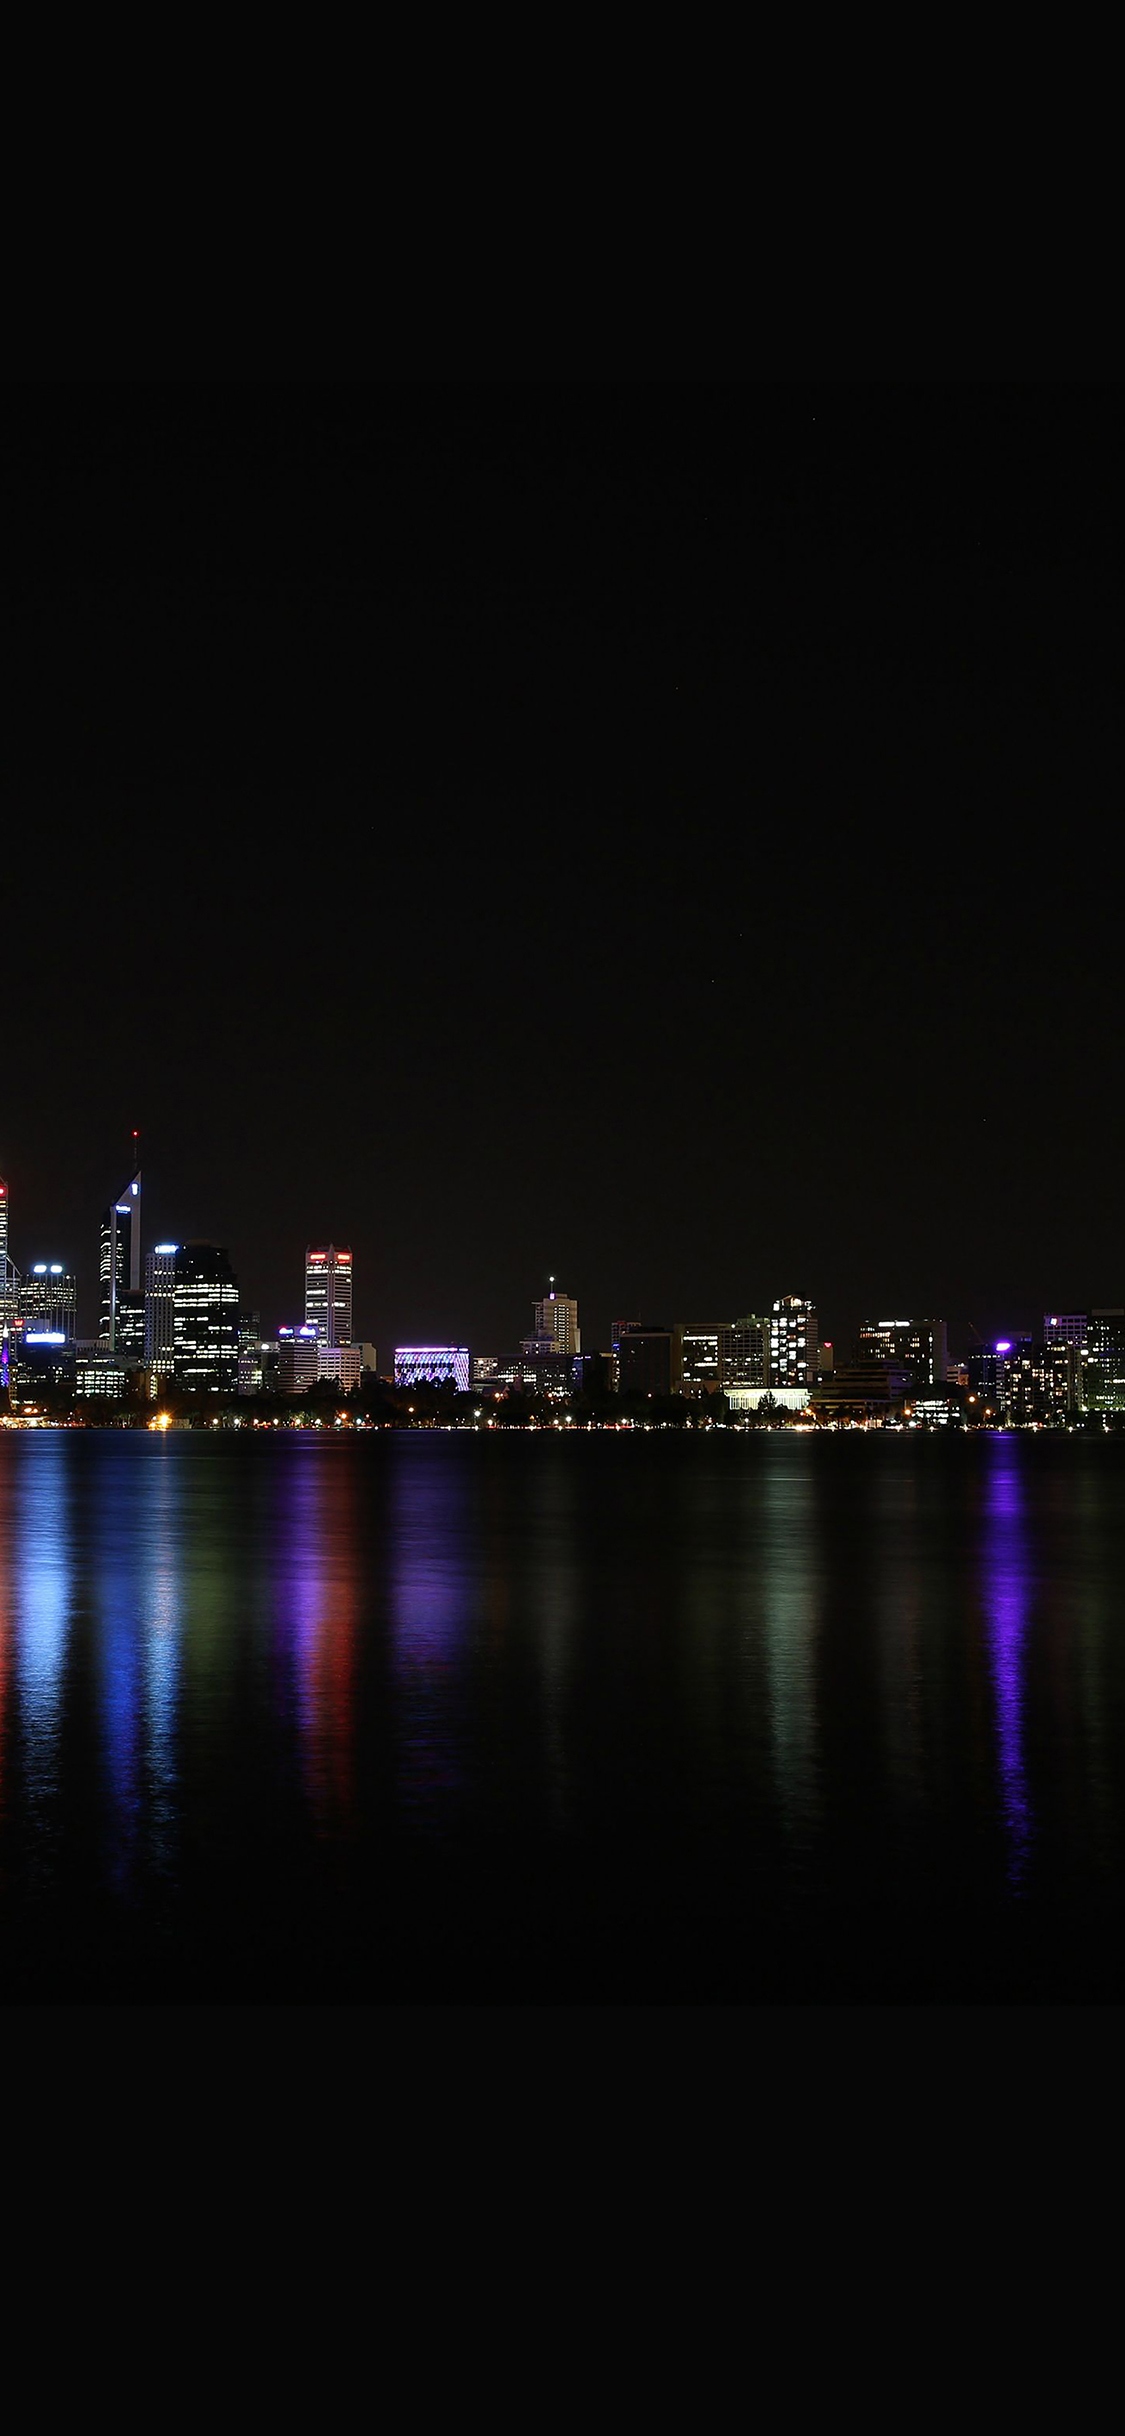 iPhoneXpapers.com-Apple-iPhone-wallpaper-mk51-city-night-skyline-architecture-river-dark